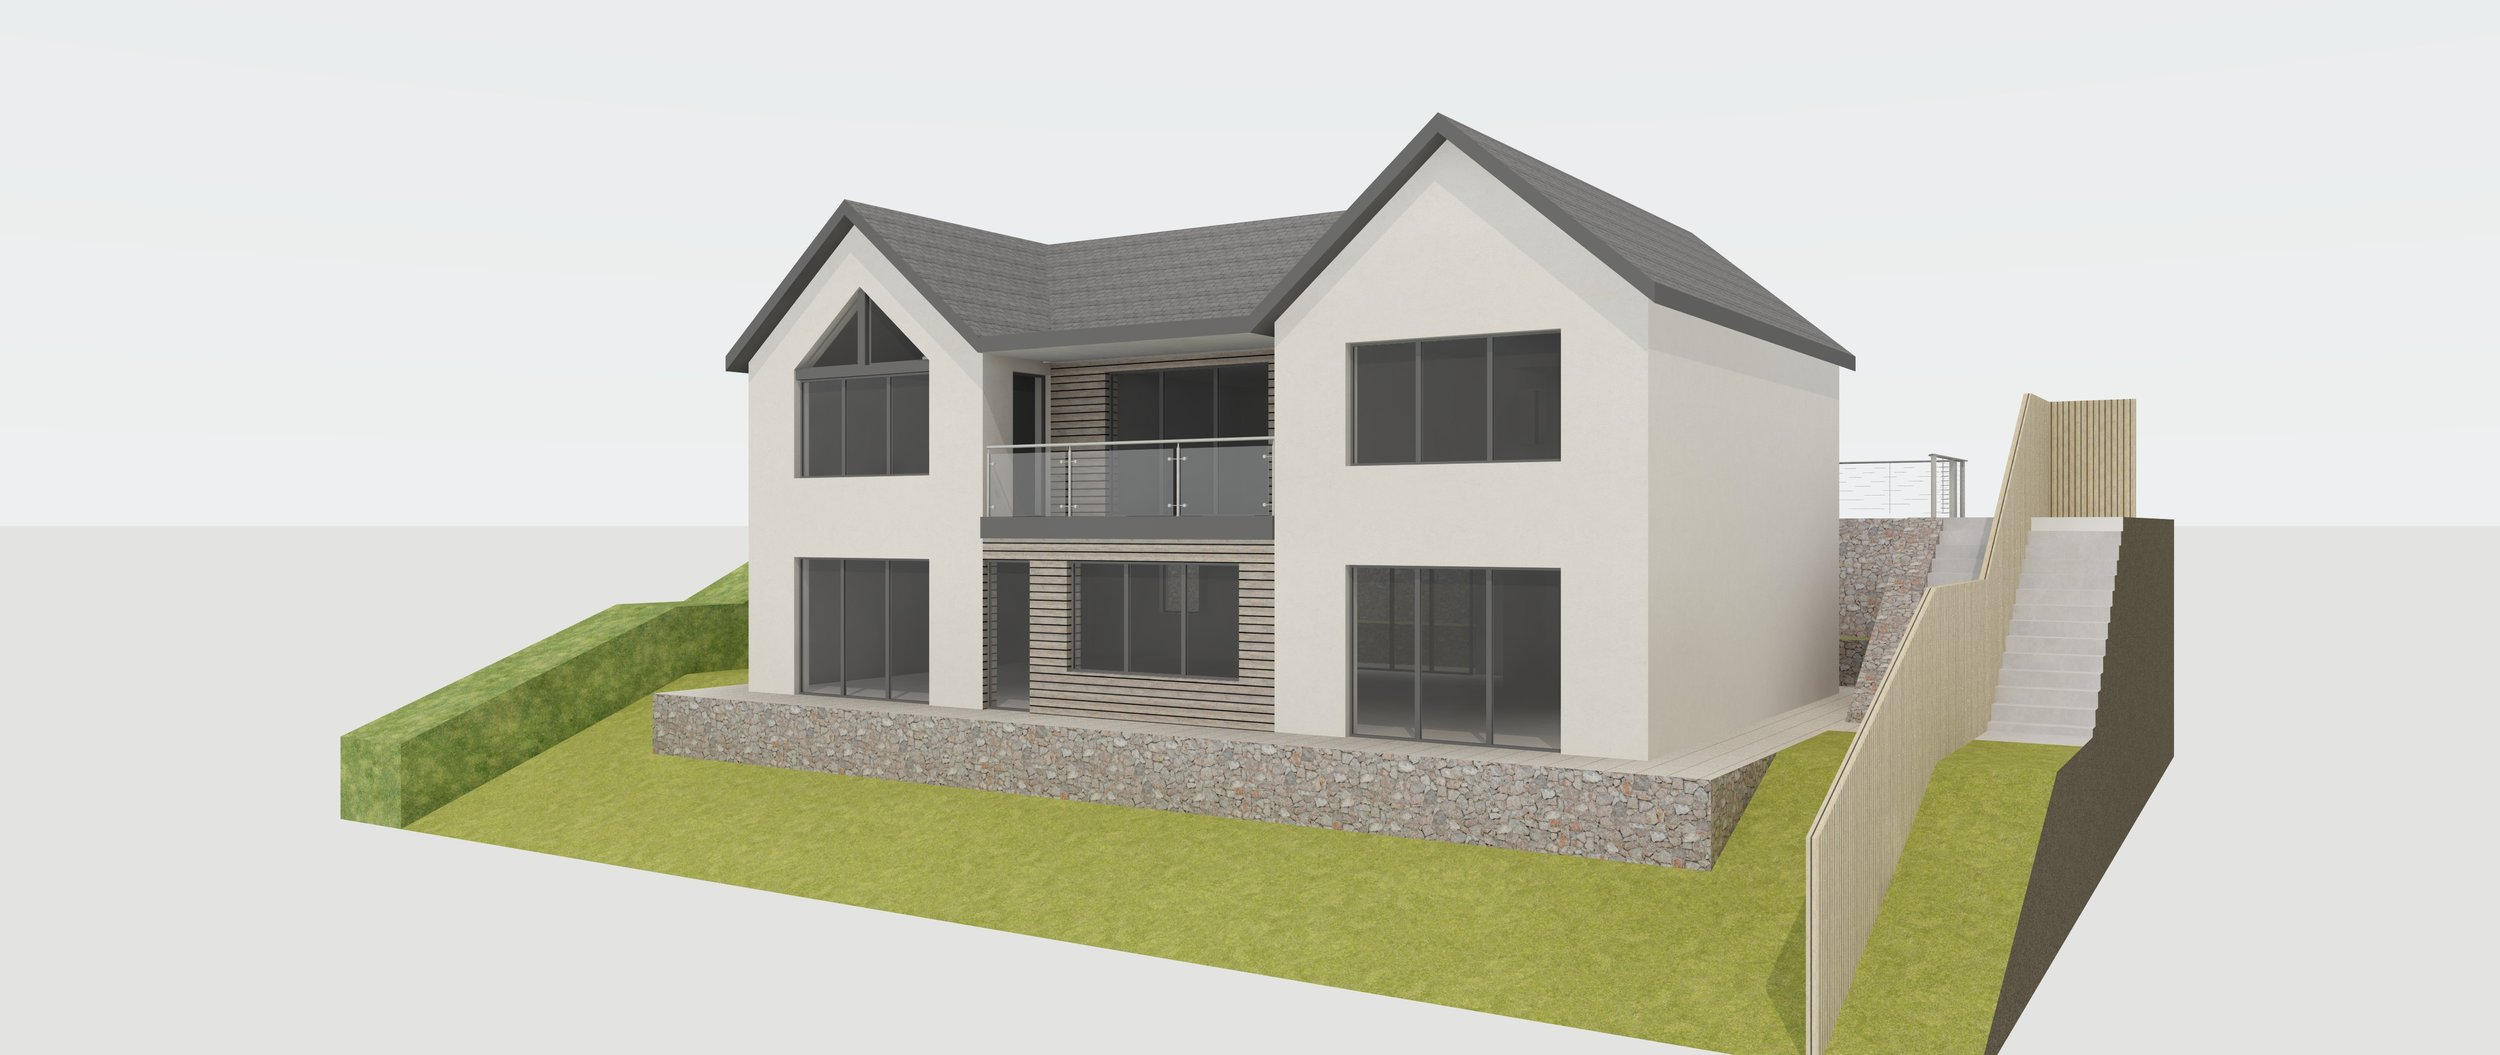 The rear elevation will benefit from panoramic views over rolling countryside to Exmoor National Park and the Bristol Channel.